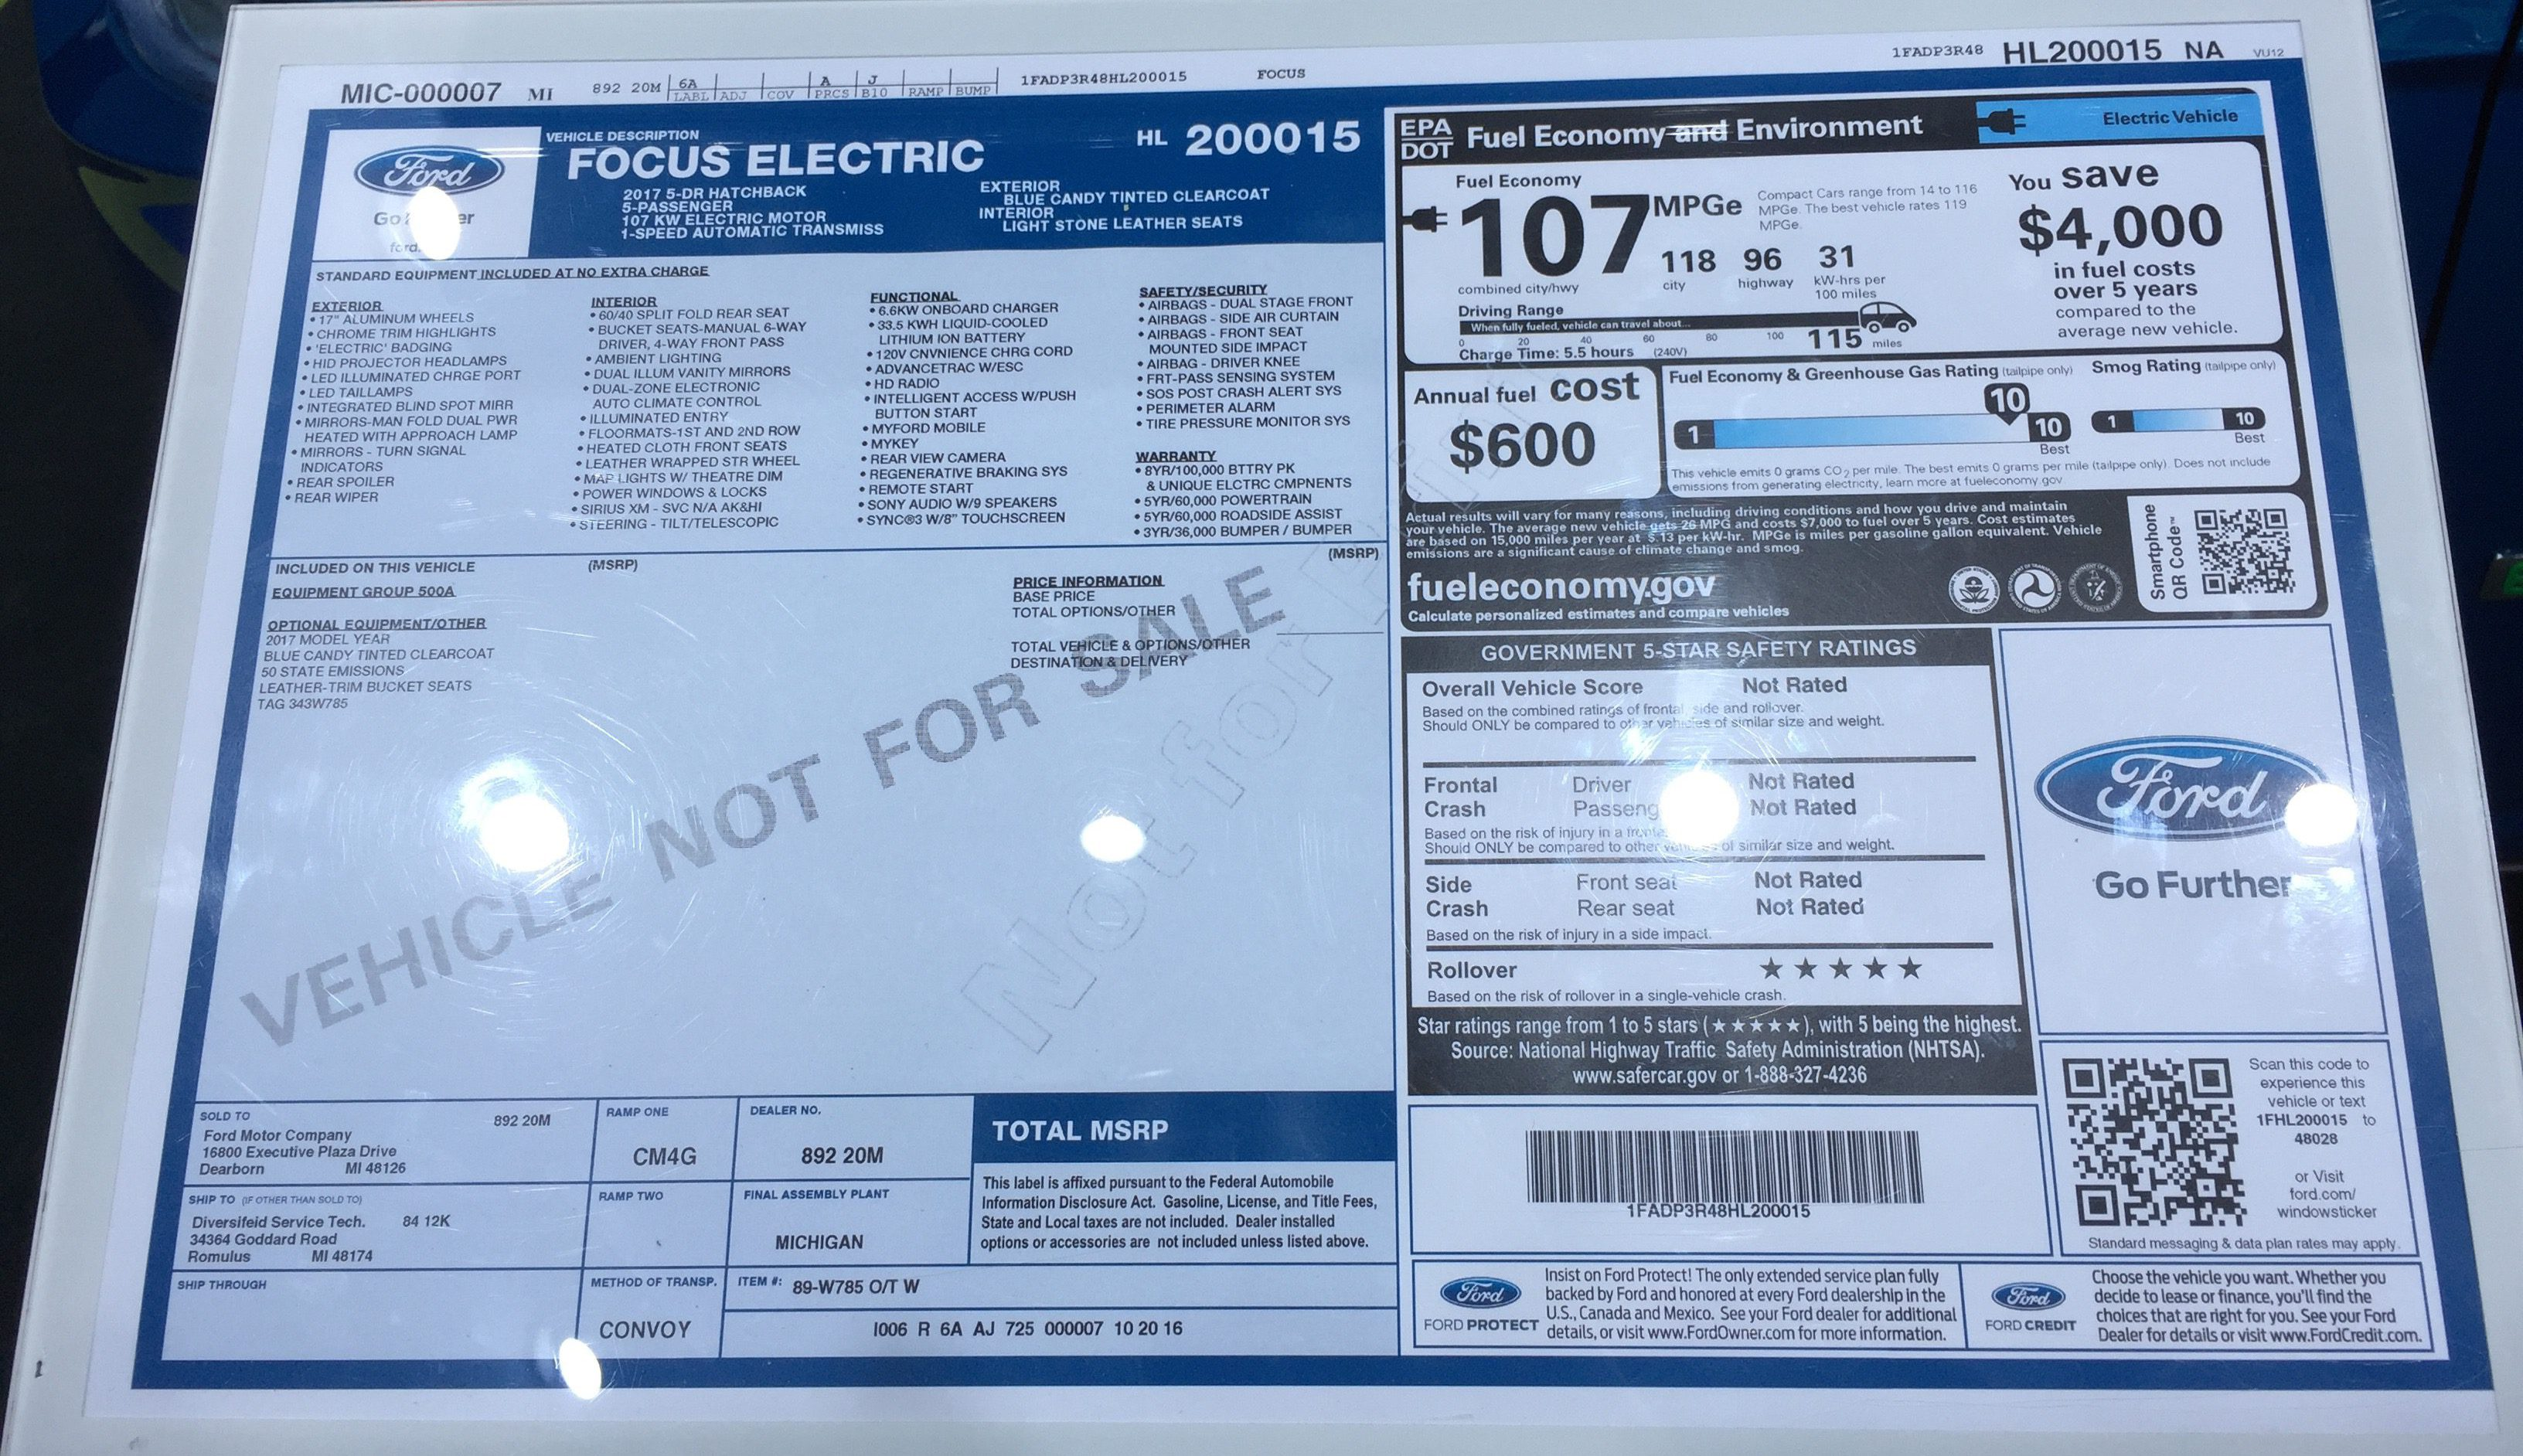 2017 Ford Focus Electric Coming With New 33 5 Kwh Battery Pack For 115 Miles Of Range